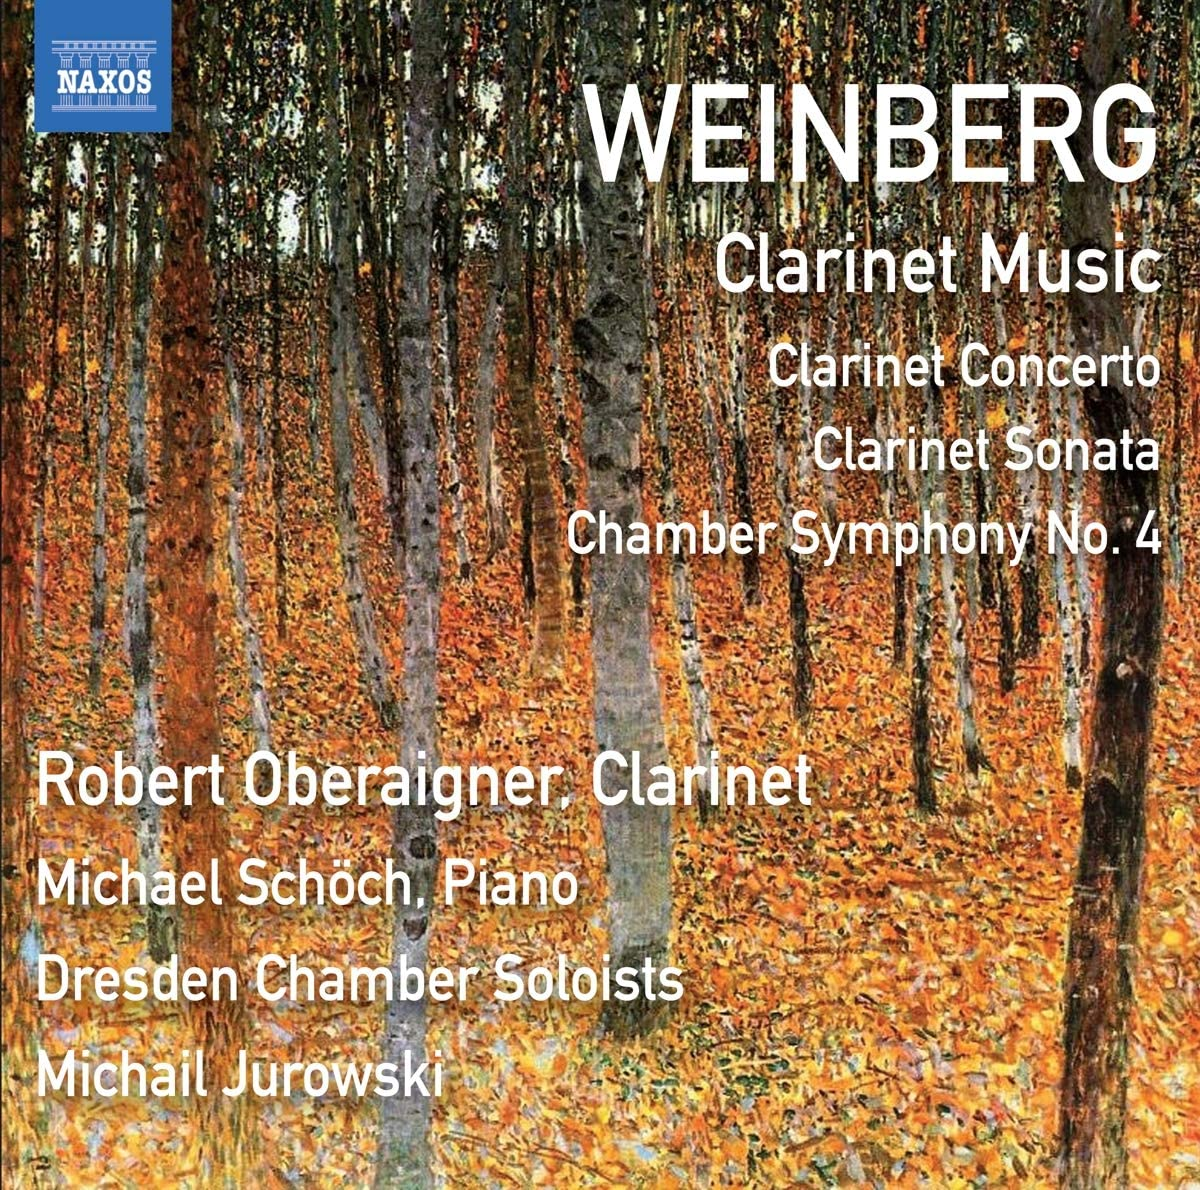 Review of WEINBERG Clarinet Music (Robert Oberaigner)